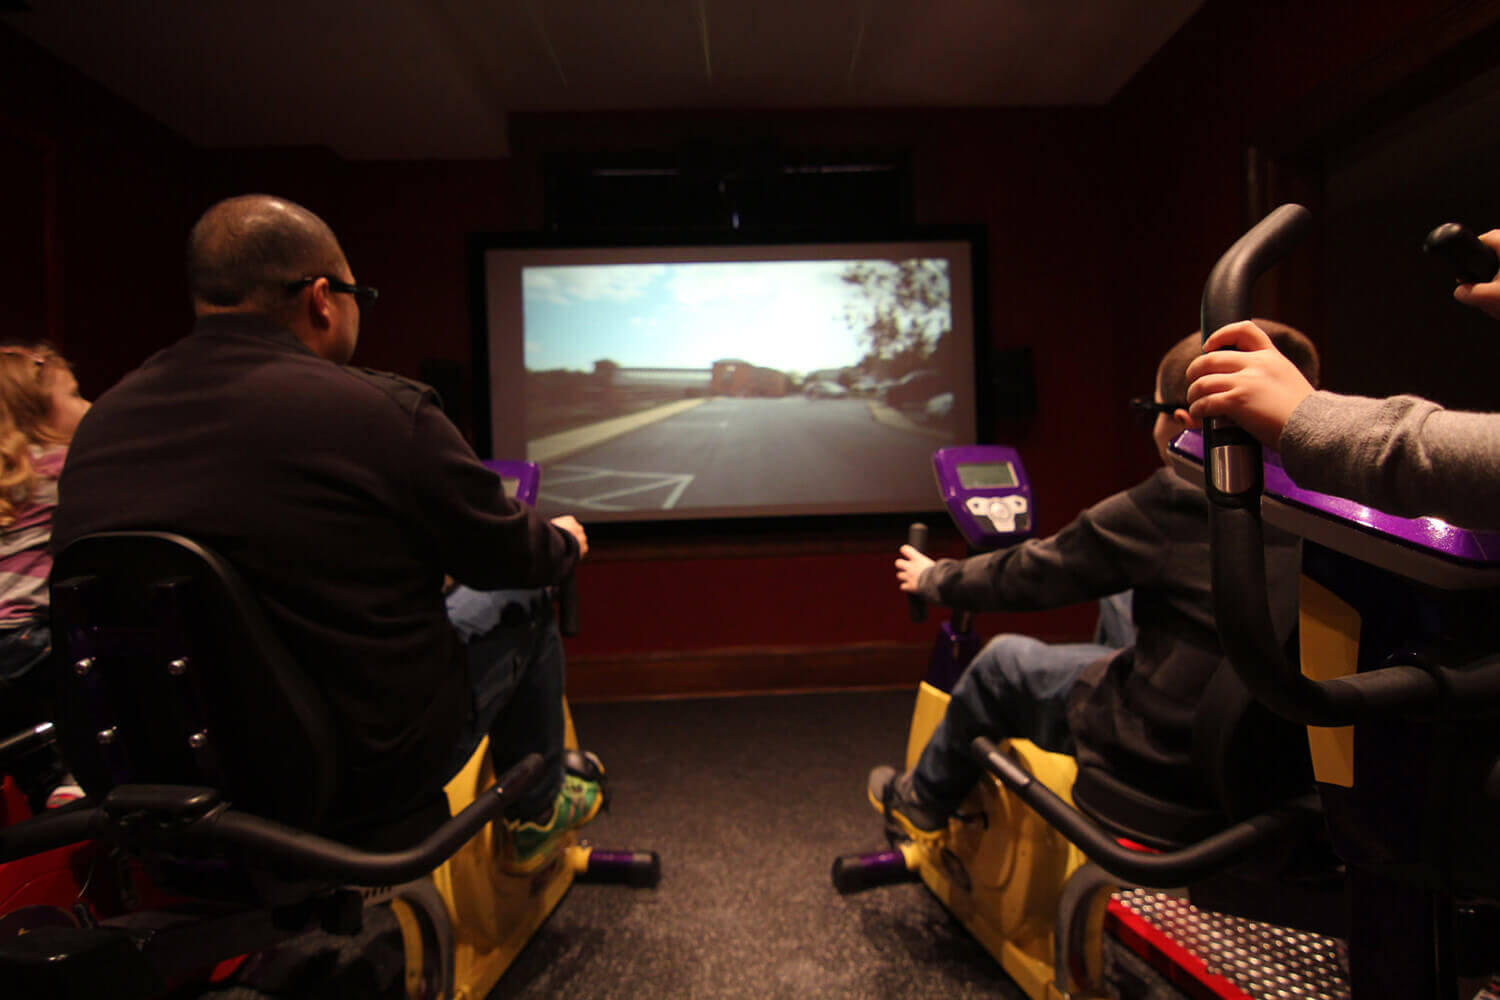 Take a ride back in time with our pedal powered 3D time machine. Image